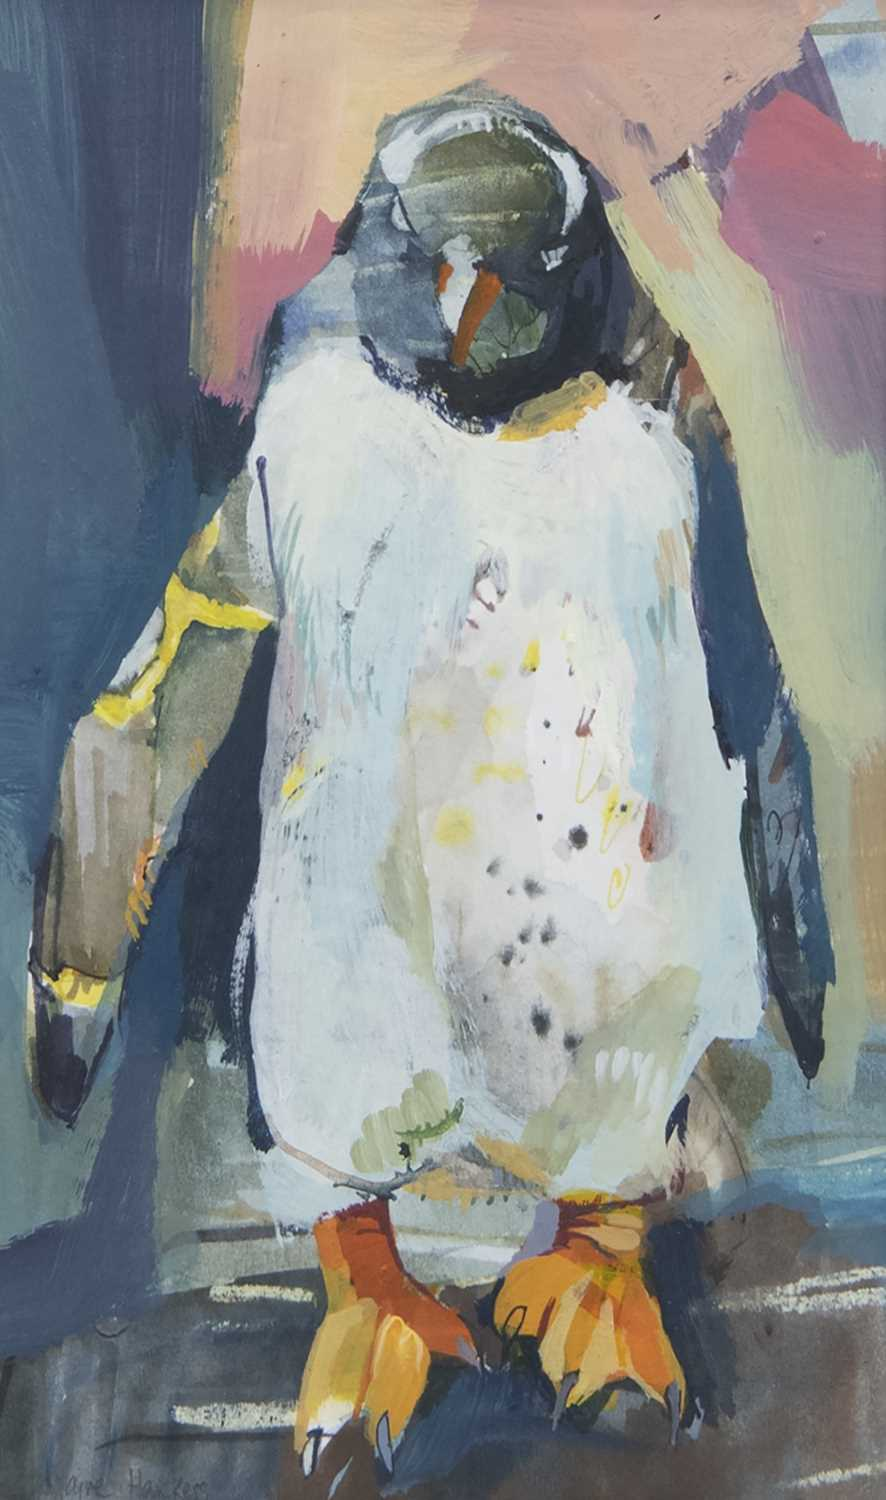 Lot 127 - WEE PENGUIN, A GOUACHE BY CLAIRE HARKESS